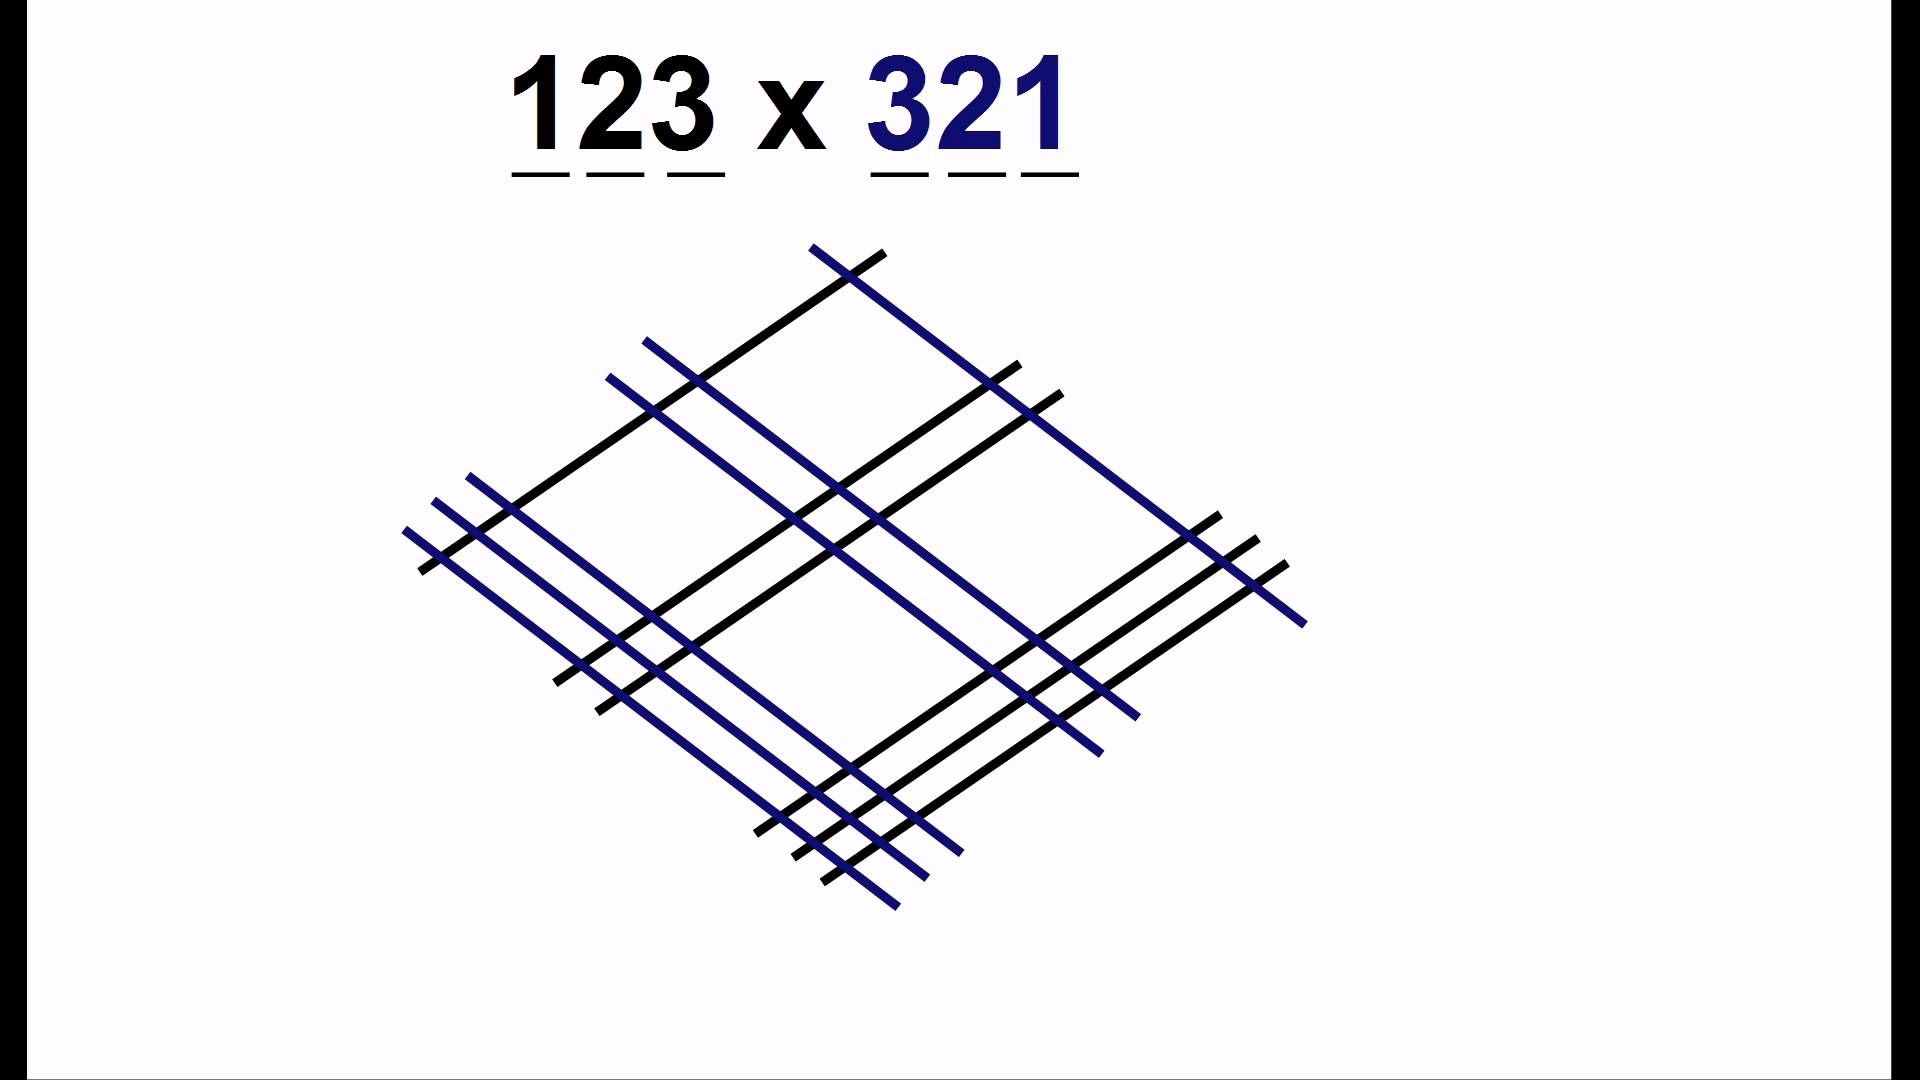 Math Trick Multiply Using Lines My High School Algebra Teachers Would Of Killed Me If I Used